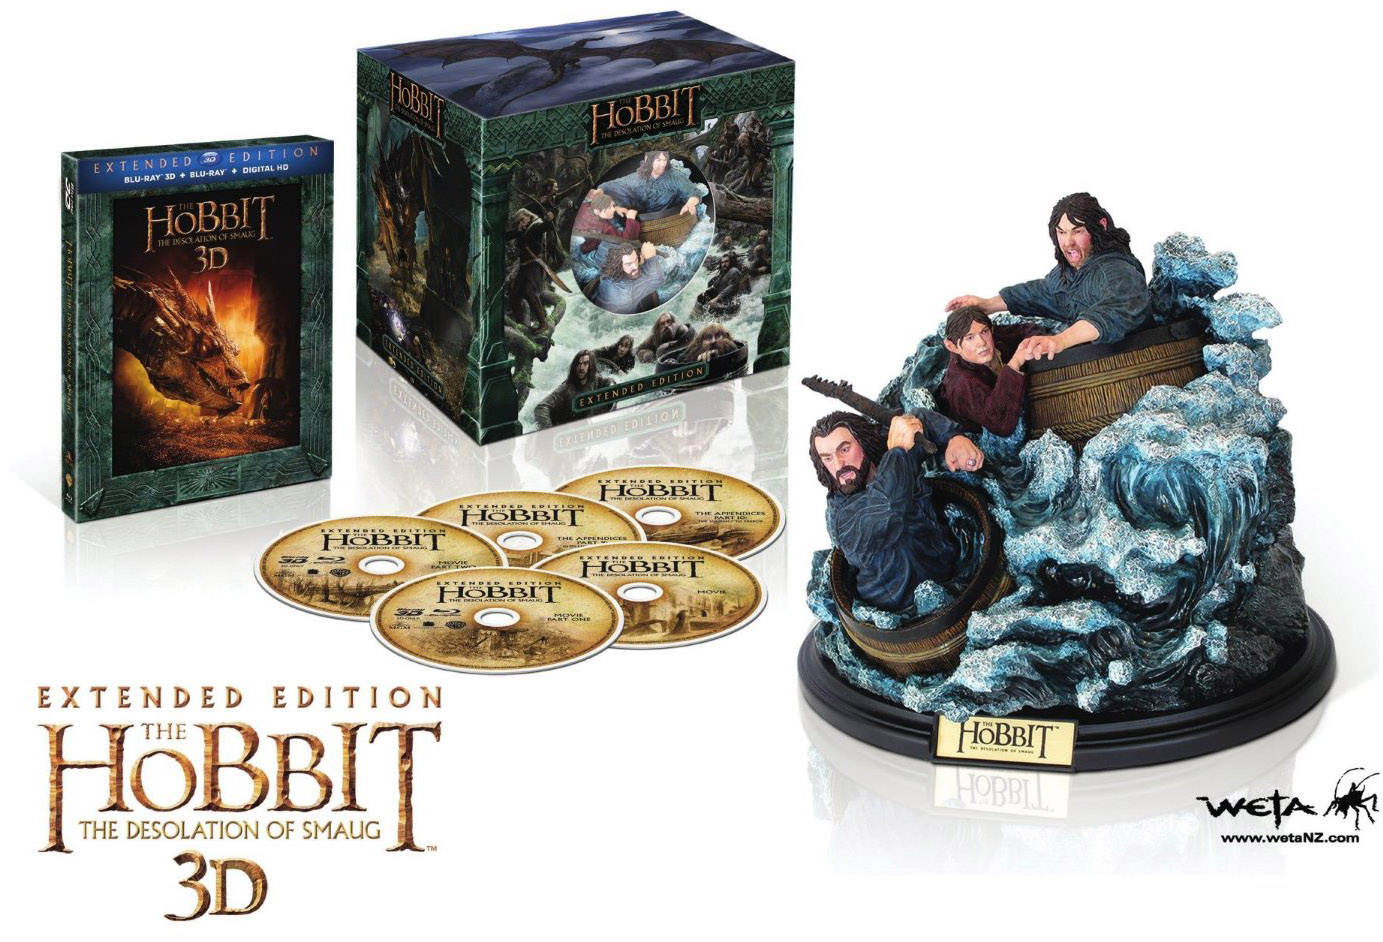 The Hobbit The Desolation of Smaug Extended Edition Amazon Exclusive Open